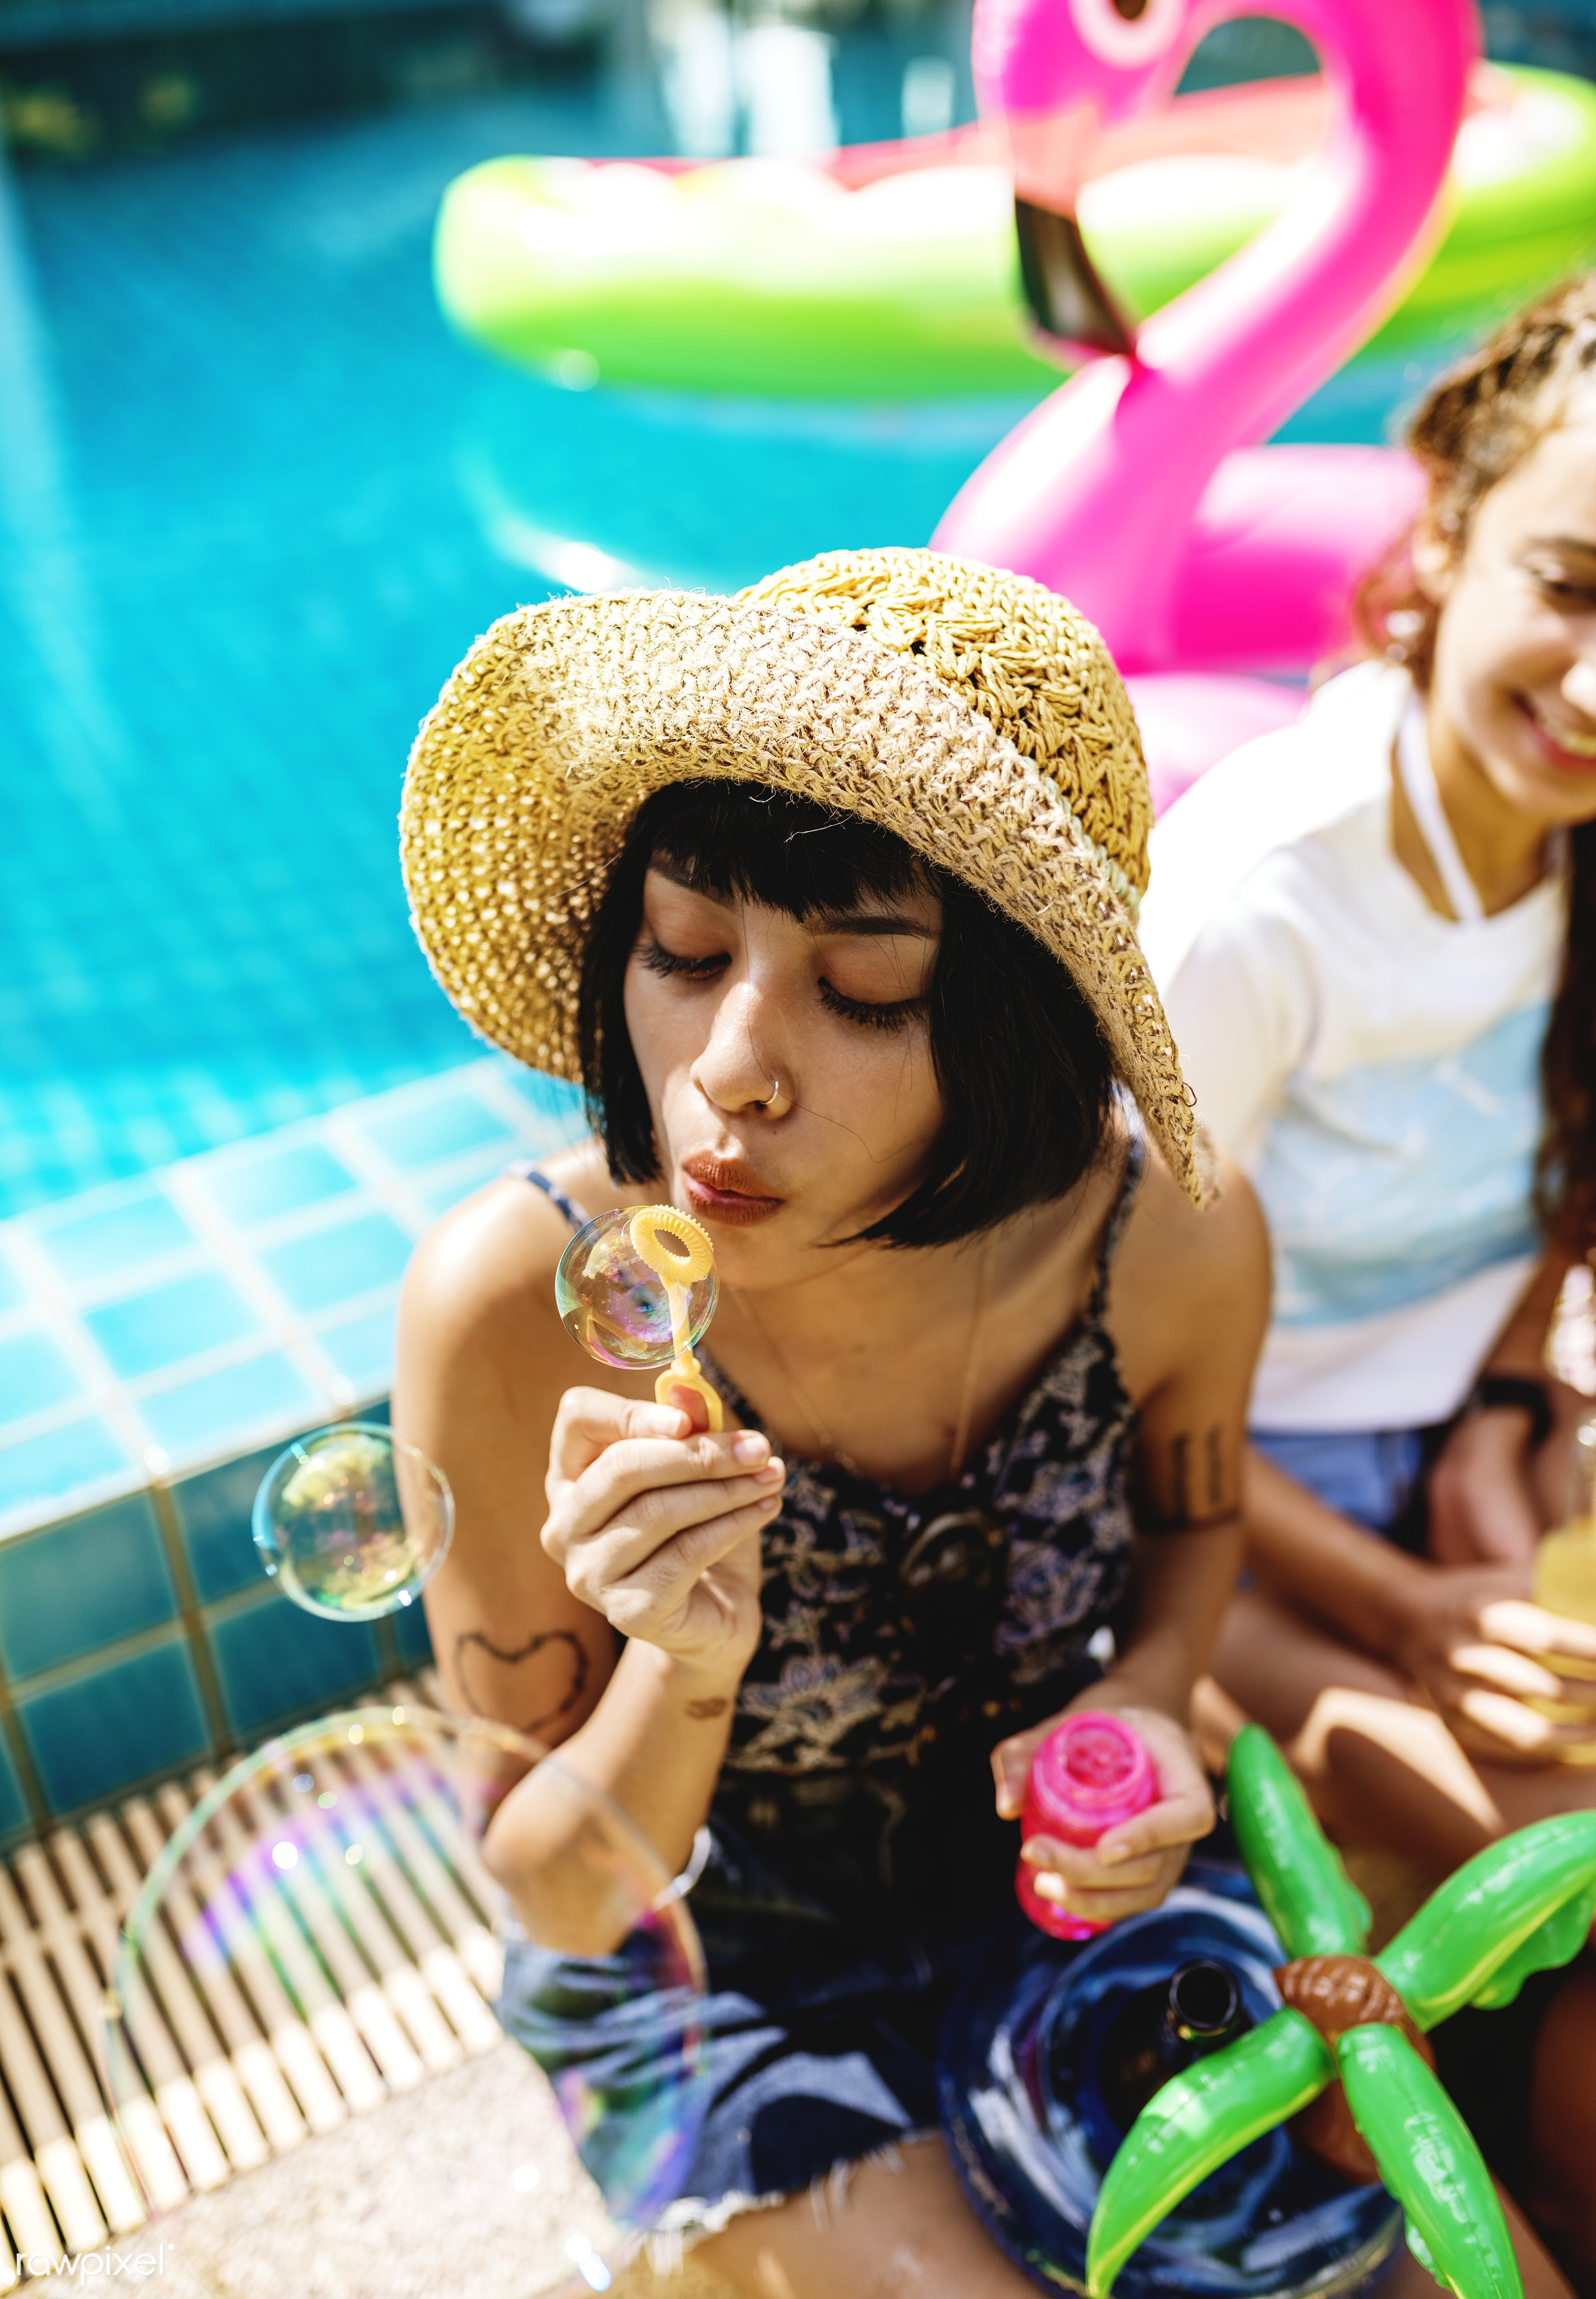 A diverse group of female friends enjoying summer time by the pool and playing with a soap bubbler - relax, diverse,...